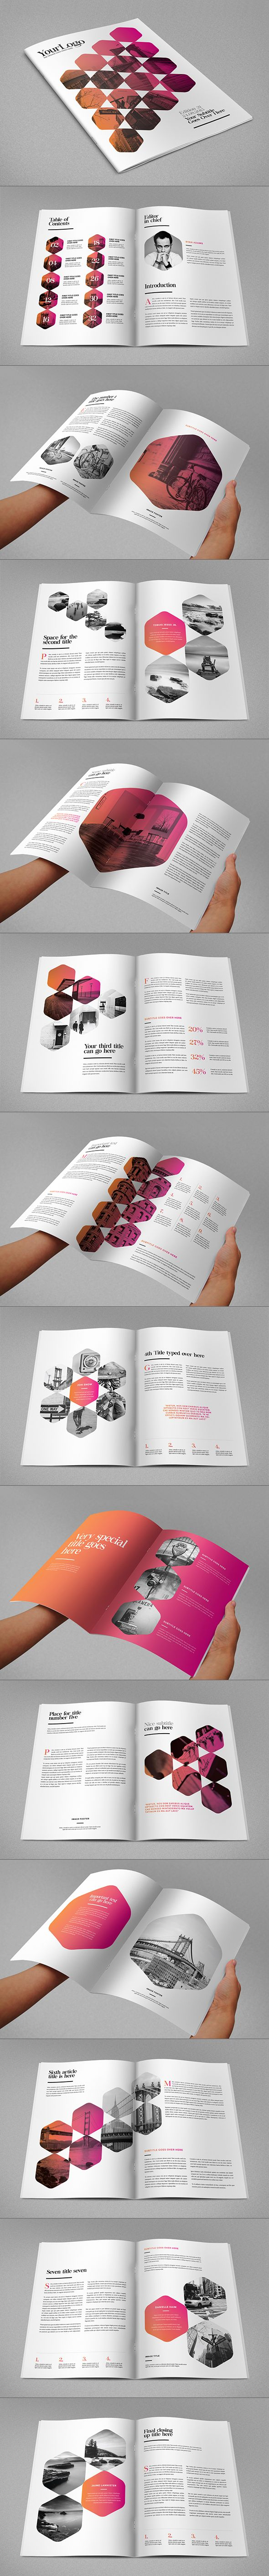 Minimal Modern Clean Magazine. Download here: http://graphicriver.net/item/minimal-modern-clean-magazine/11295103?ref=abradesign #design #magazine